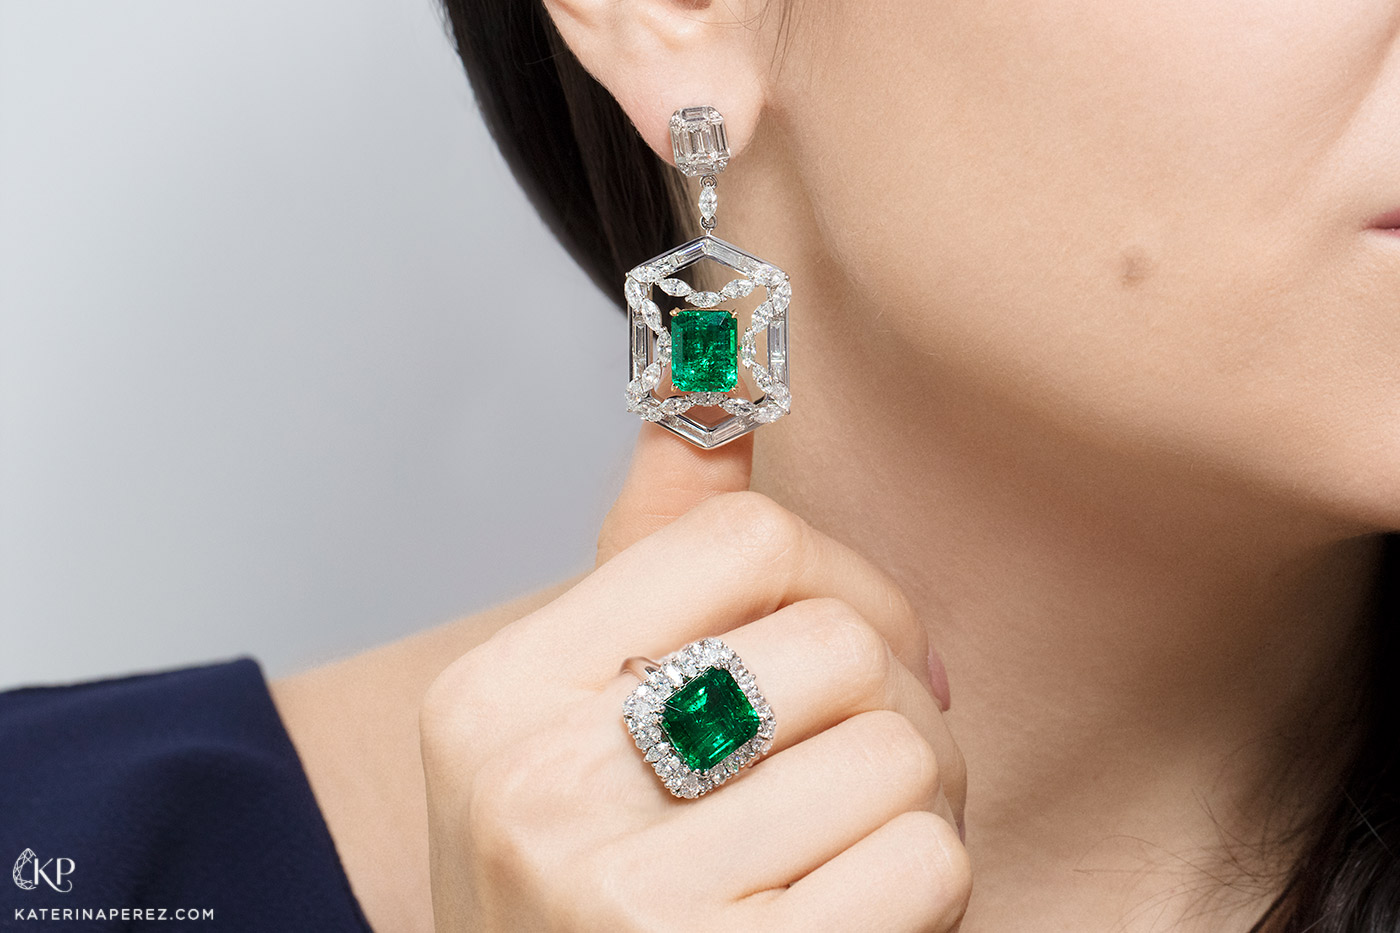 Sunita Nahata 'Regalia' collection 'Princess Priyashi' earring with 10.26 ct Colombian emerald and 10.48 ct diamonds, and ring with 8.95ct Zambian emerald and 1.72ct diamonds, both in 18k white gold